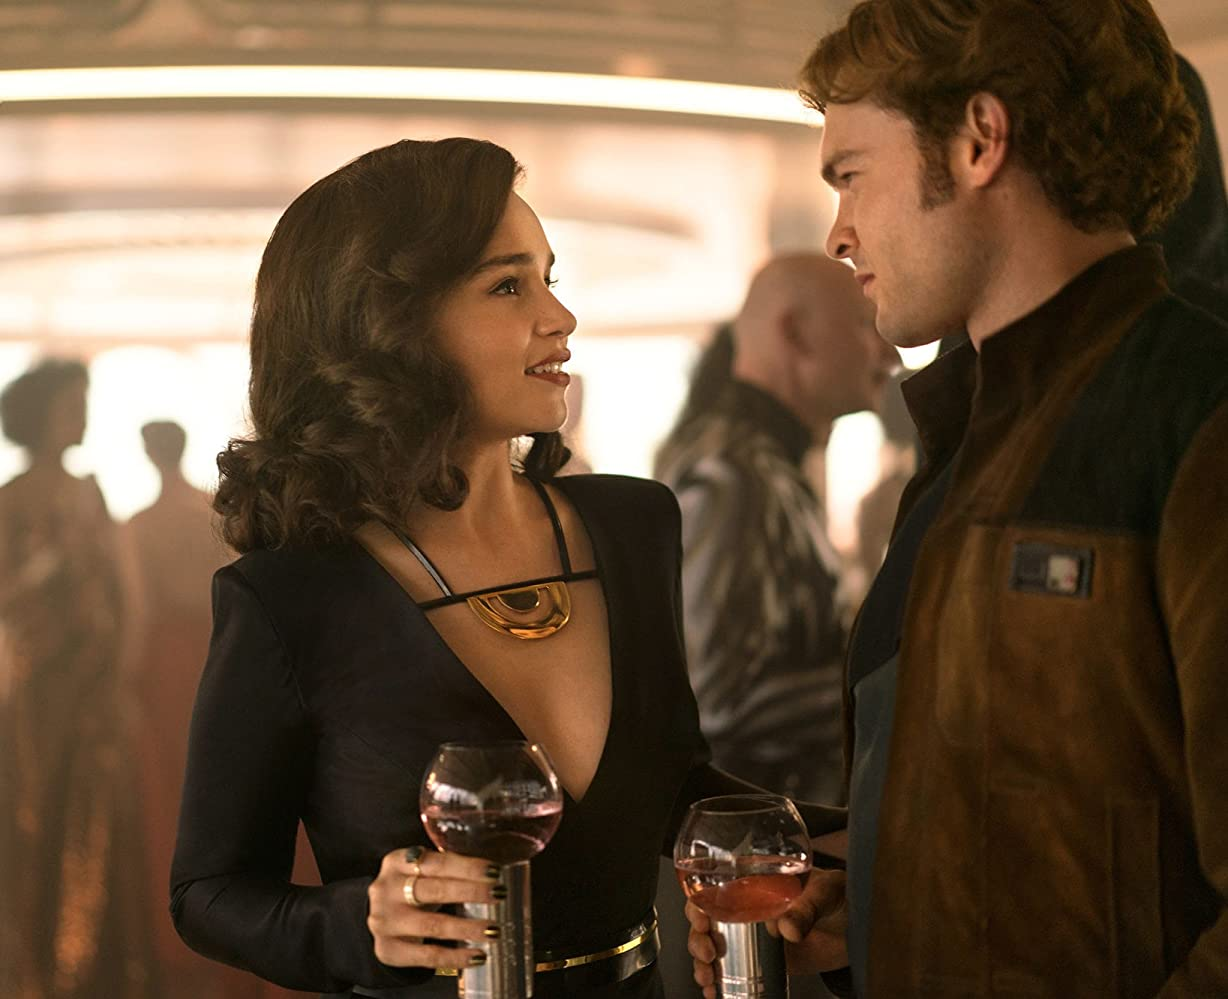 Alden Ehrenreich and Emilia Clarke in Solo: A Star Wars Story (2018)